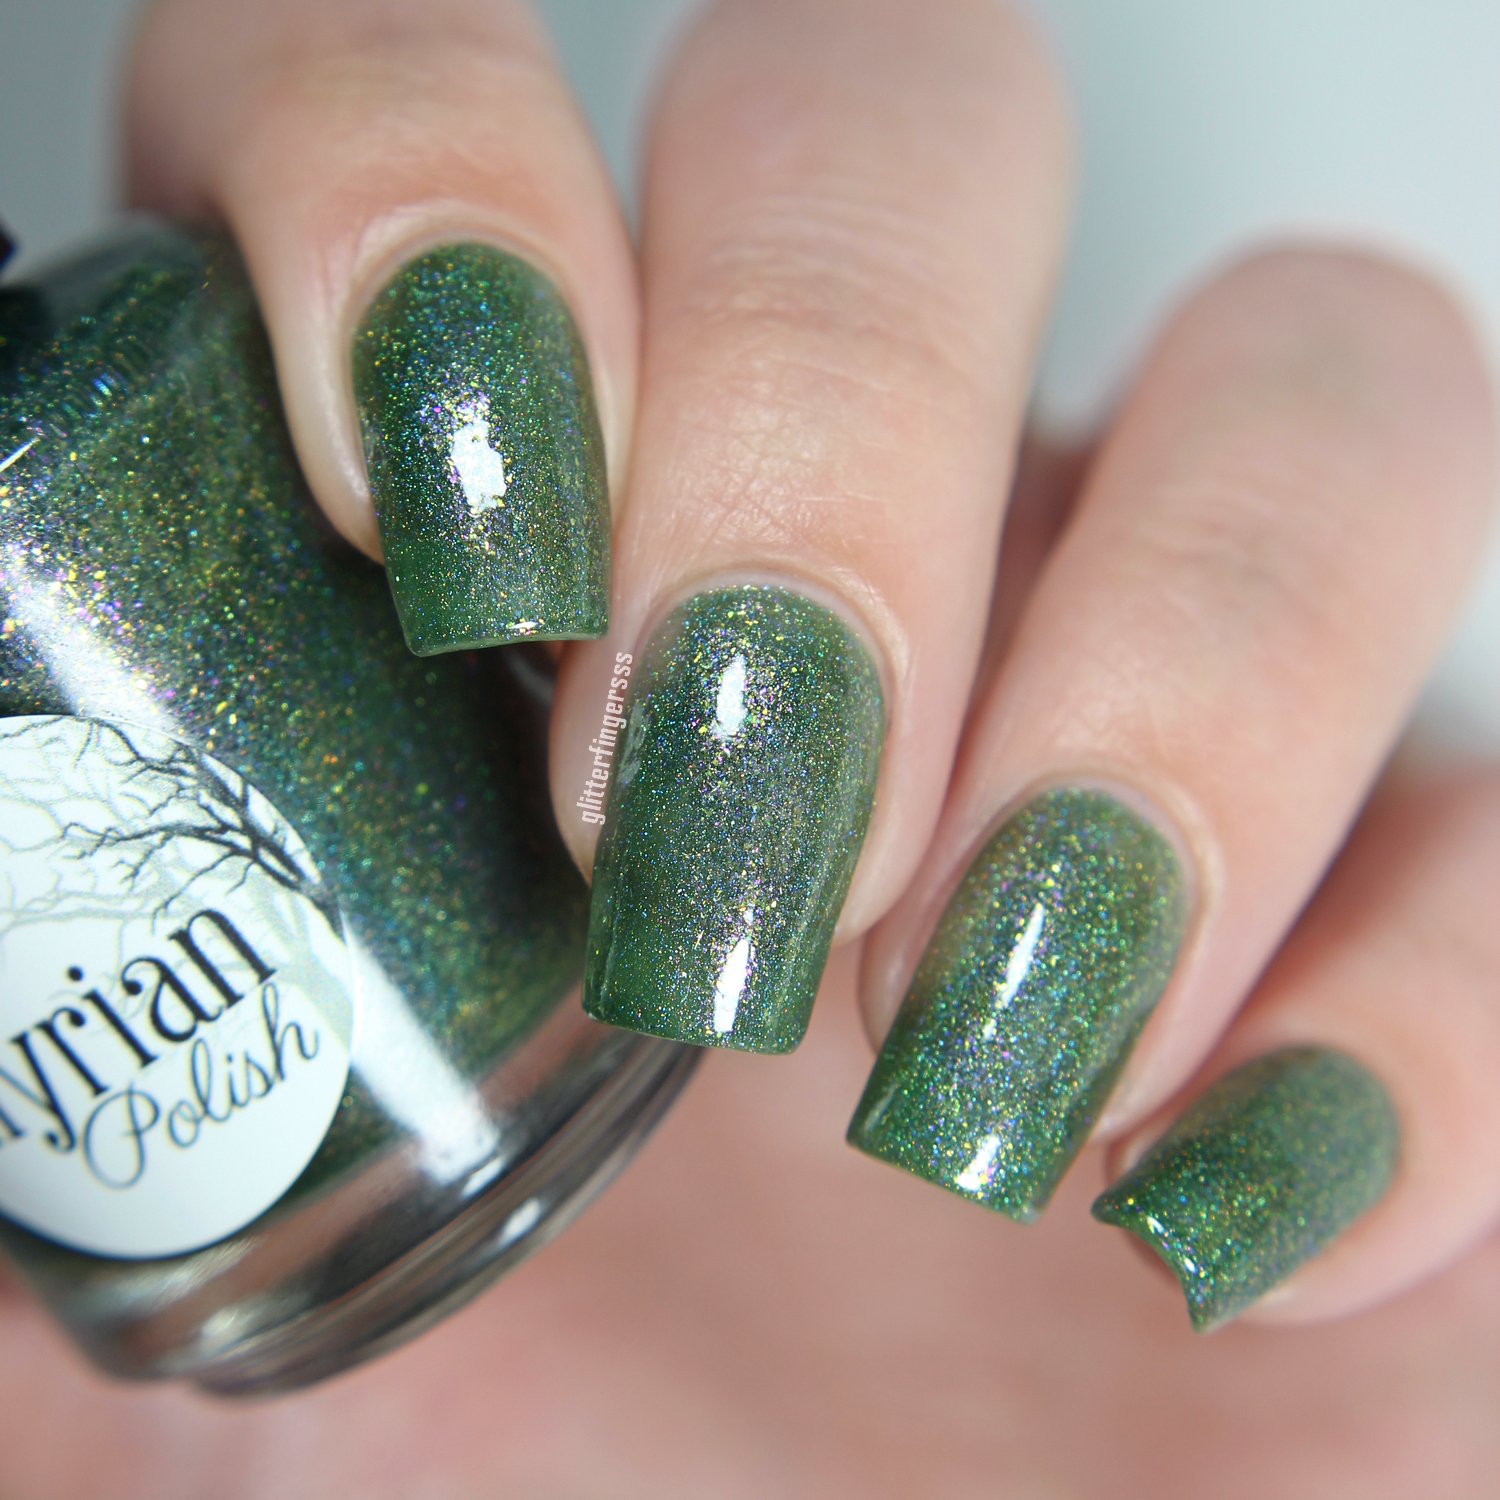 Illyrian Polish | Winter Is Coming ~ Glitterfingersss in english